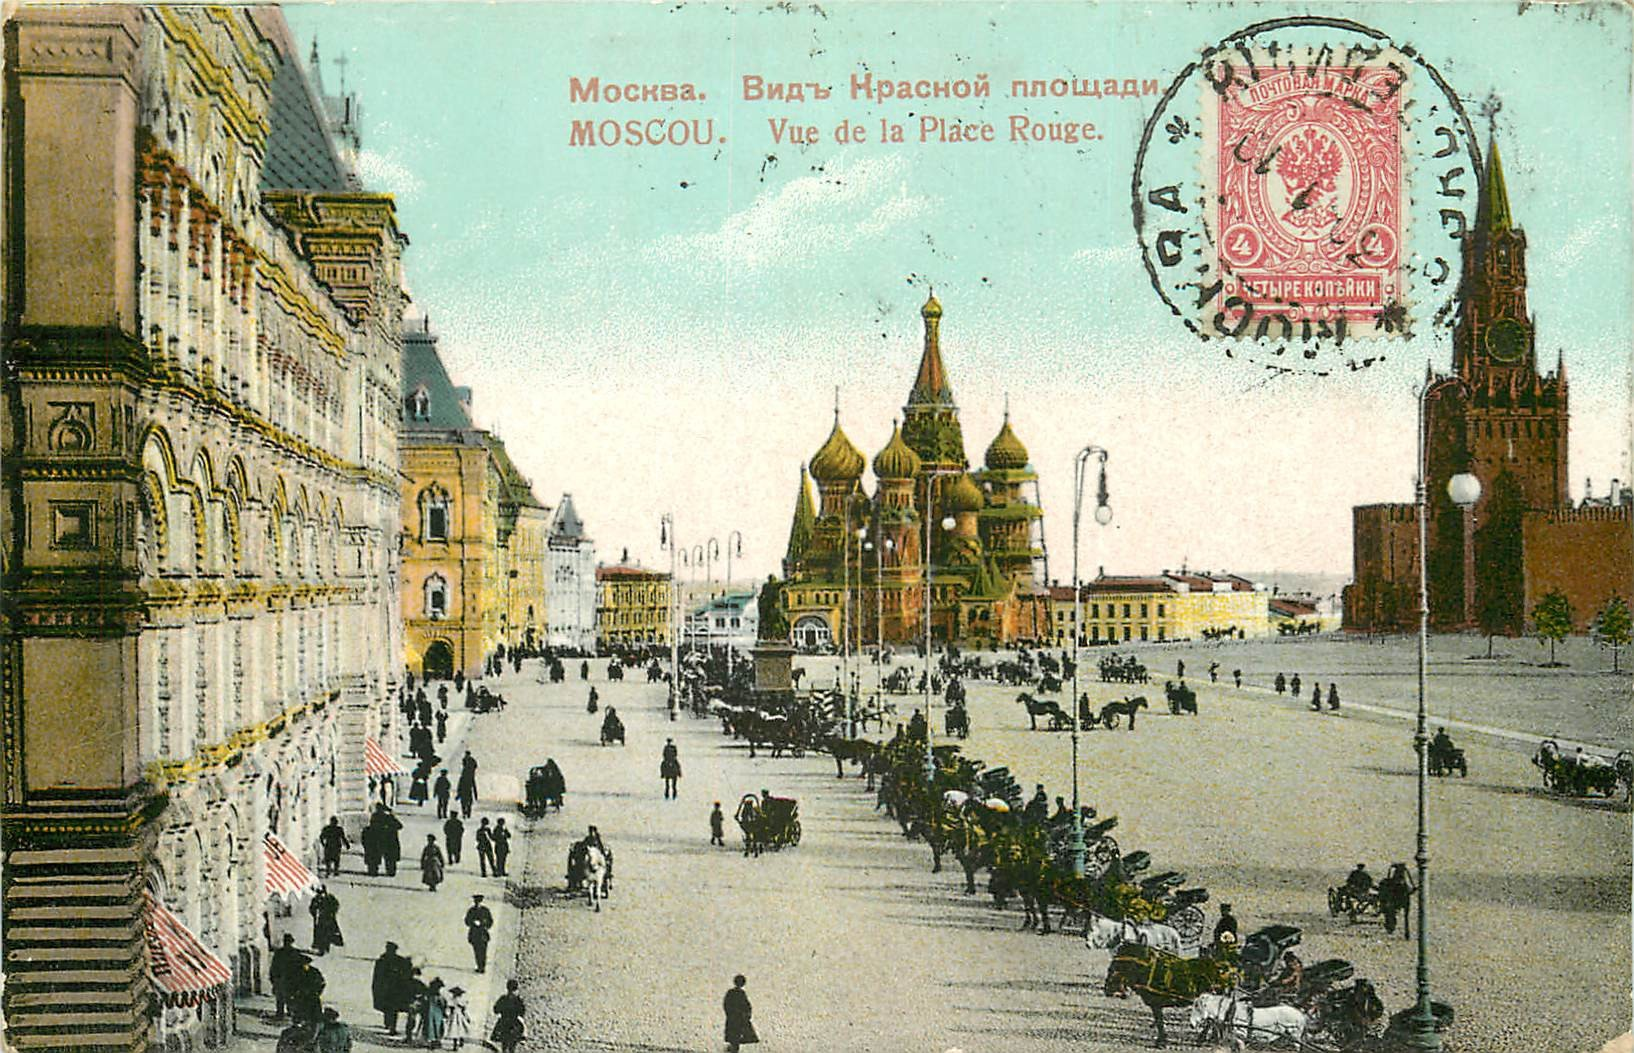 MOSCOU. La Place Rouge 1910